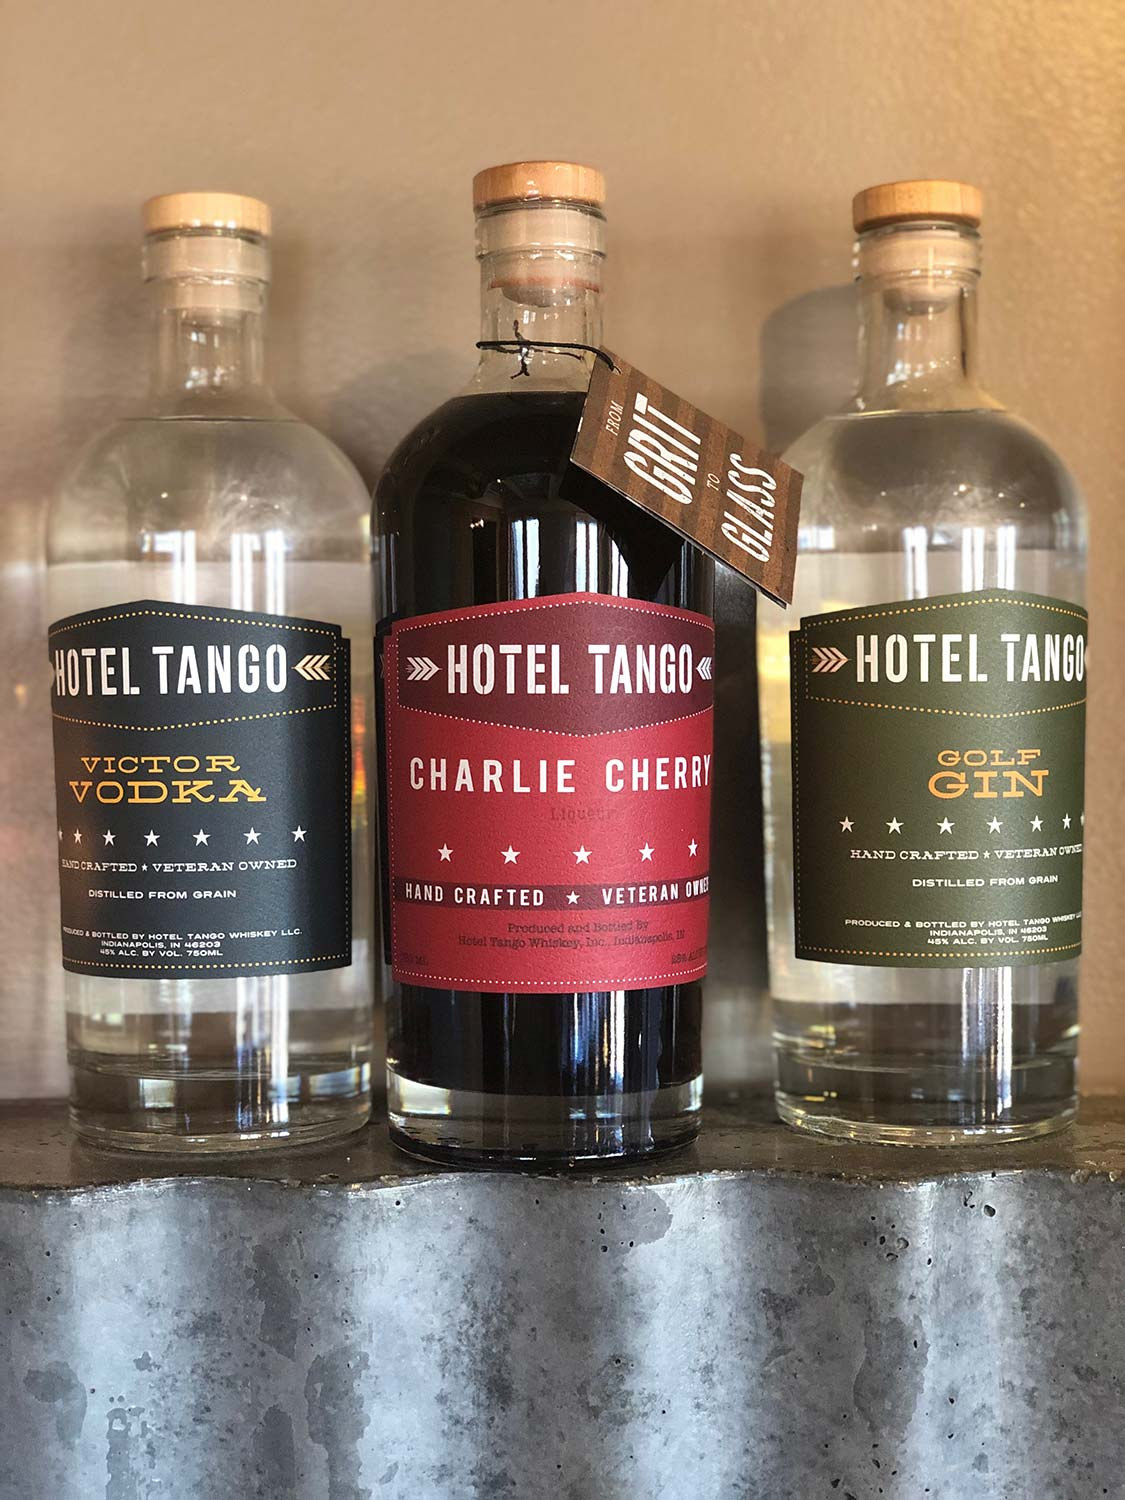 Dining and Drinking Together with Hotel Tango and Friends